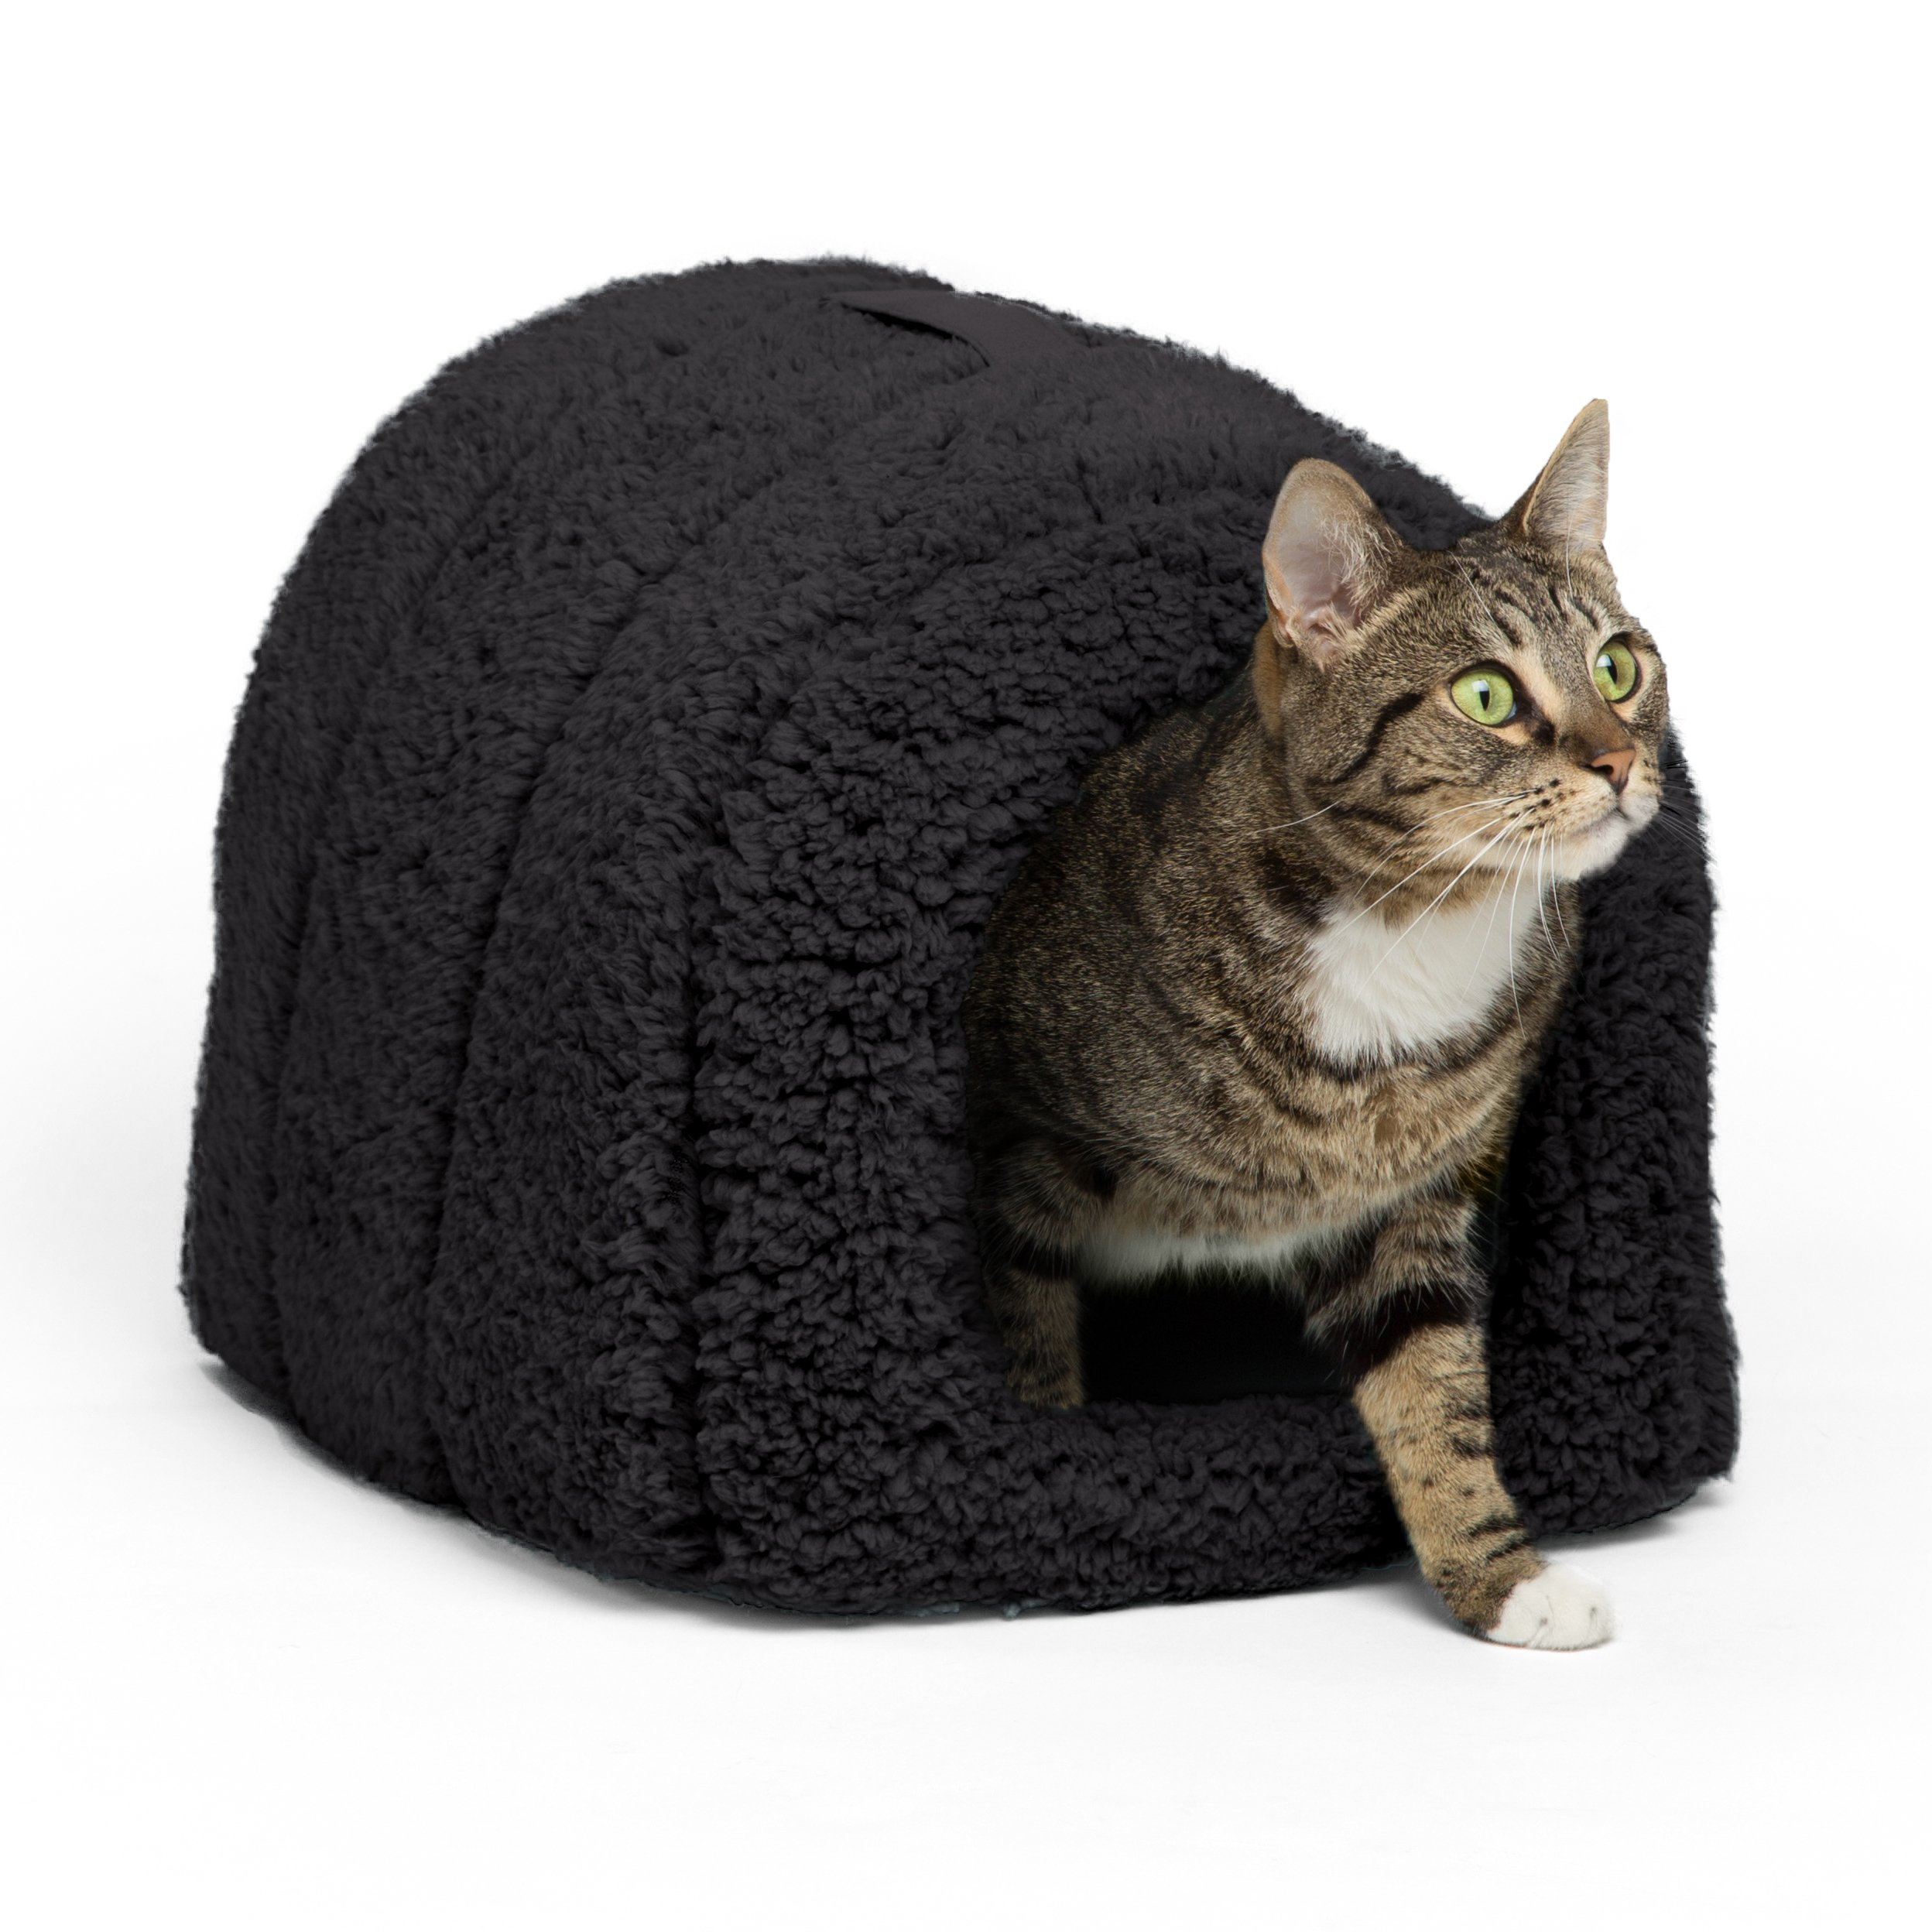 Best Friends by Sheri Pet Igloo Hut, Sherpa, Black - Cat and Small Dog Bed Offers Privacy and Warmth for Better Sleep - 17x13x9'' - For Pets 9lbs or Less